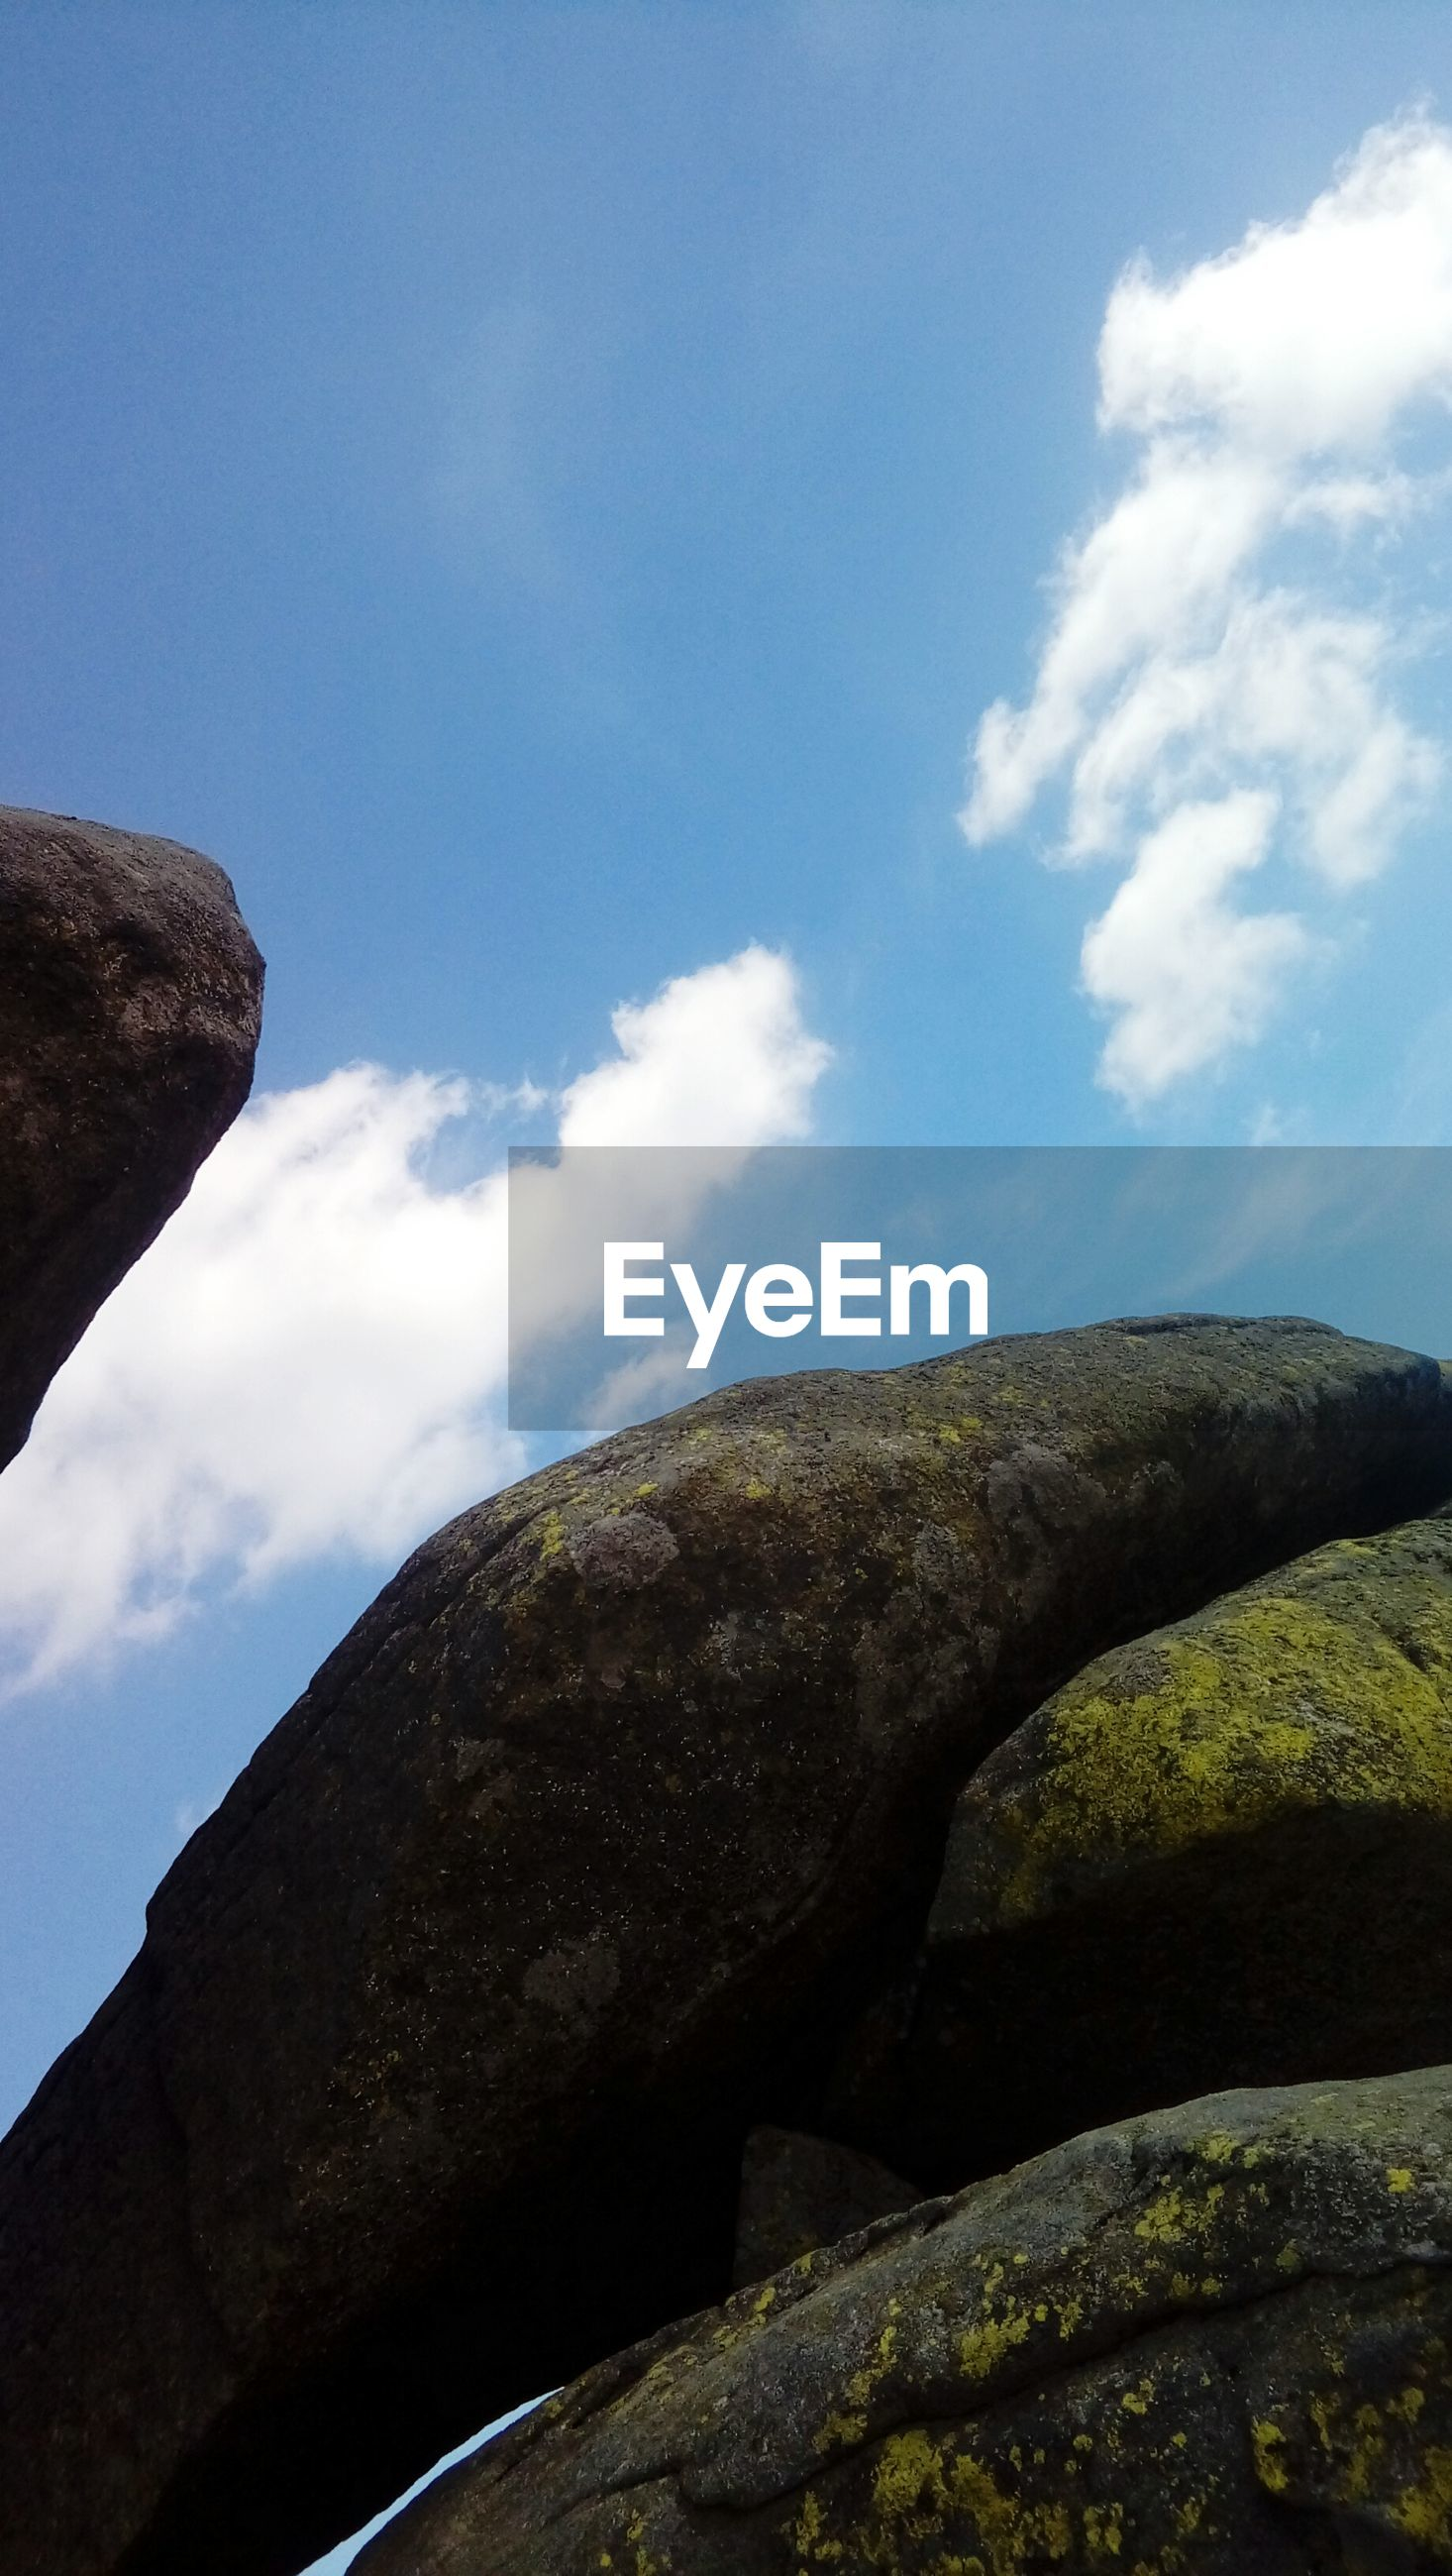 sky, low angle view, cloud - sky, rock - object, day, beauty in nature, outdoors, nature, tranquility, no people